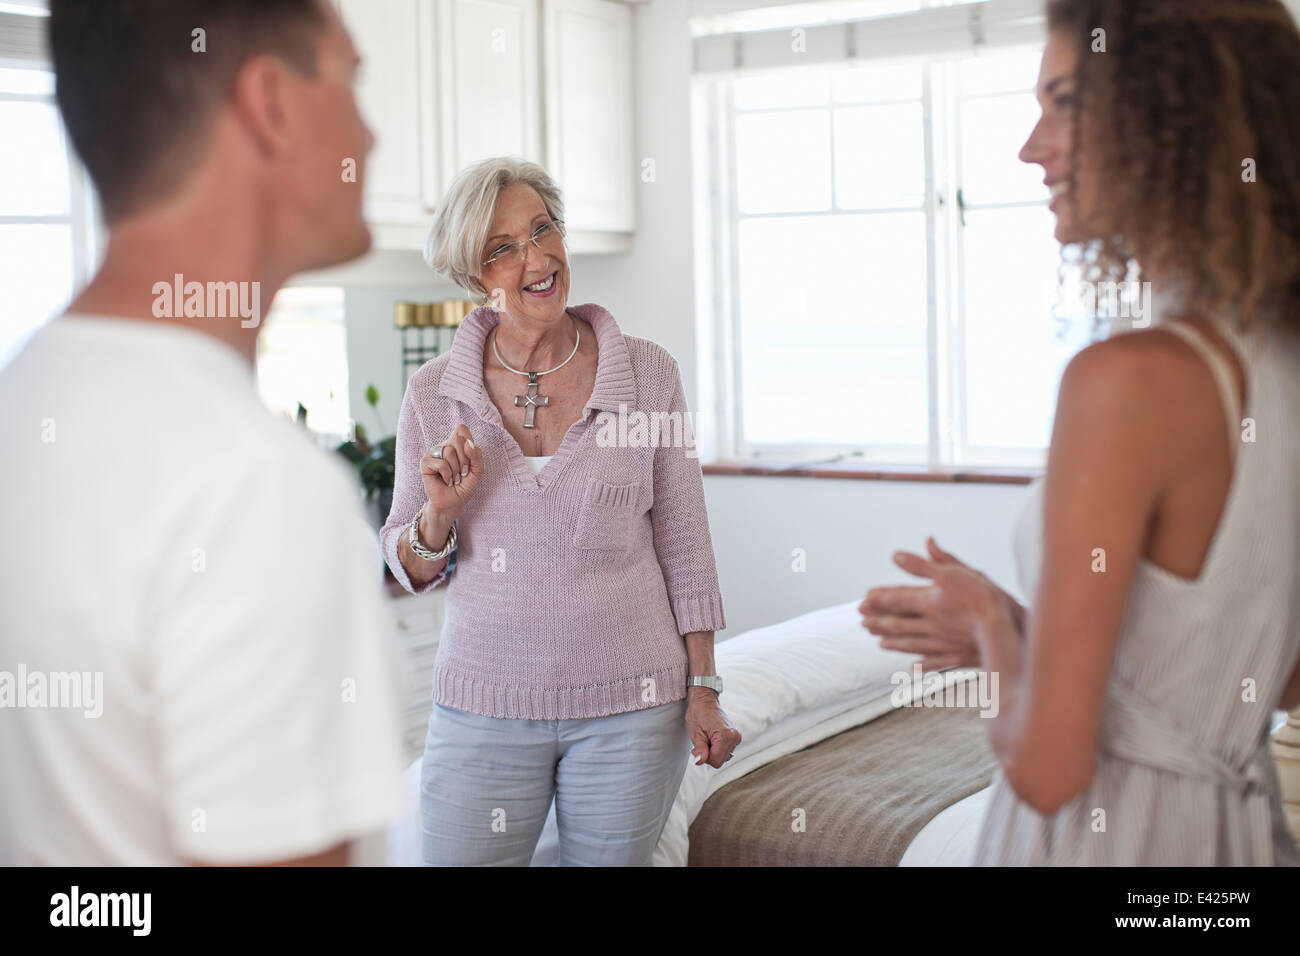 Senior woman guiding couple in holiday apartment - Stock Image